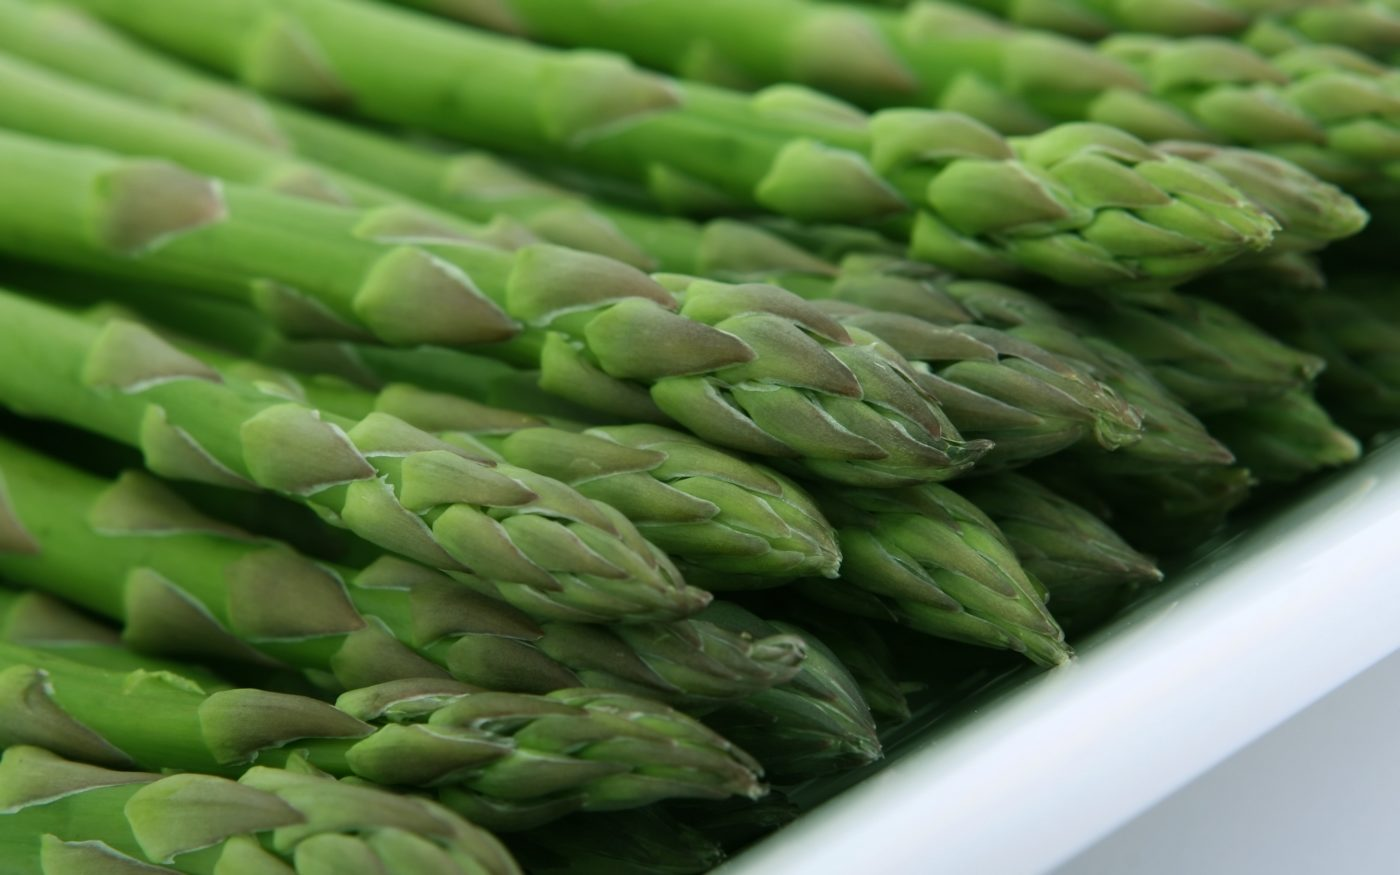 asparagus bunch a zero calorie food